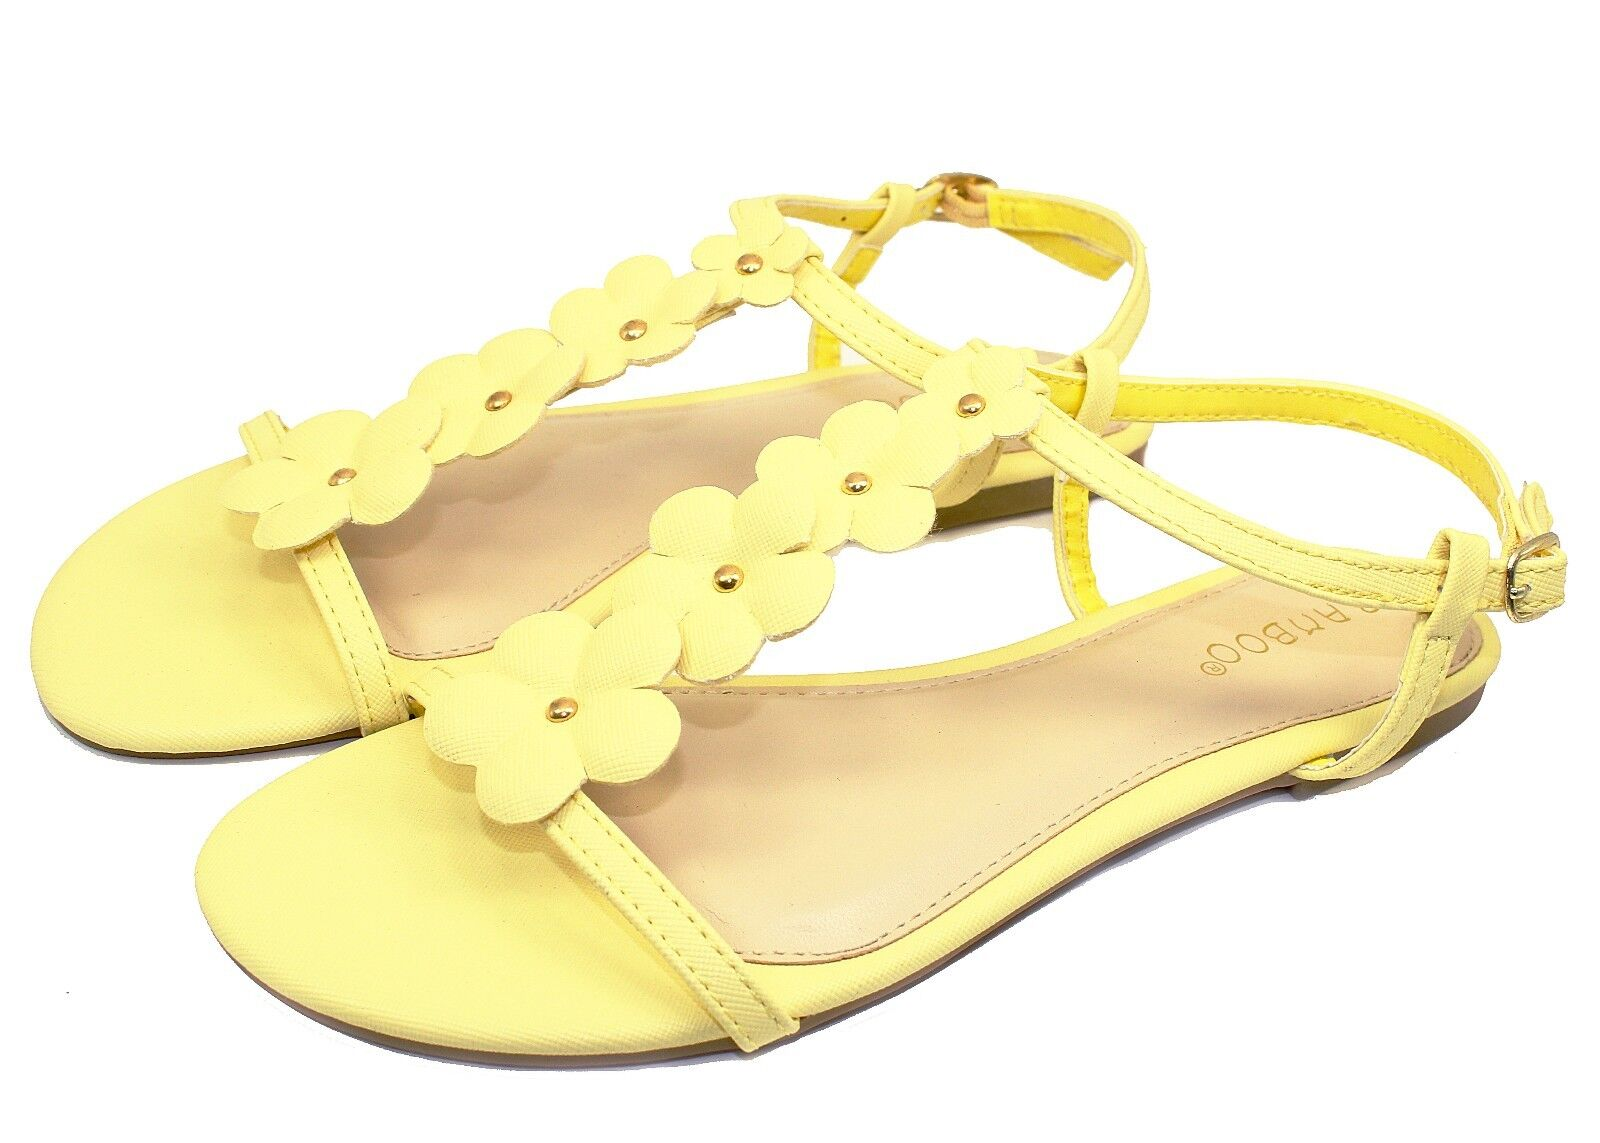 Caleb-10 New Party Gladiator Floral Stone Flats Cute Sandals Party New Women Shoes Yellow 4ff639